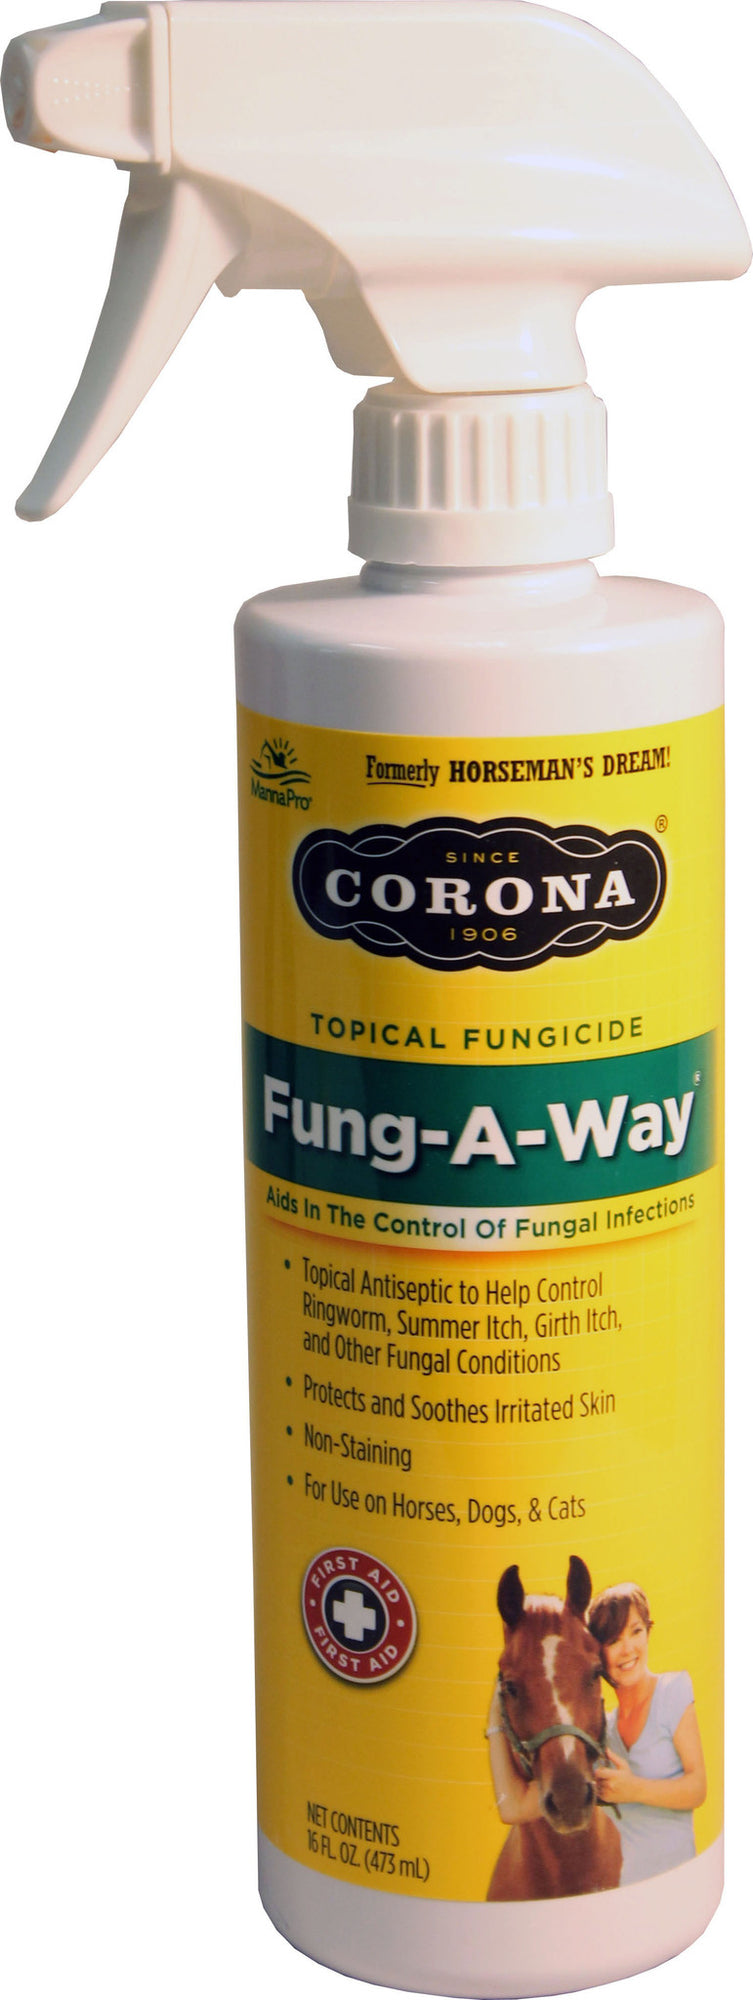 Corona Fung-A-Way Fungicide Solution